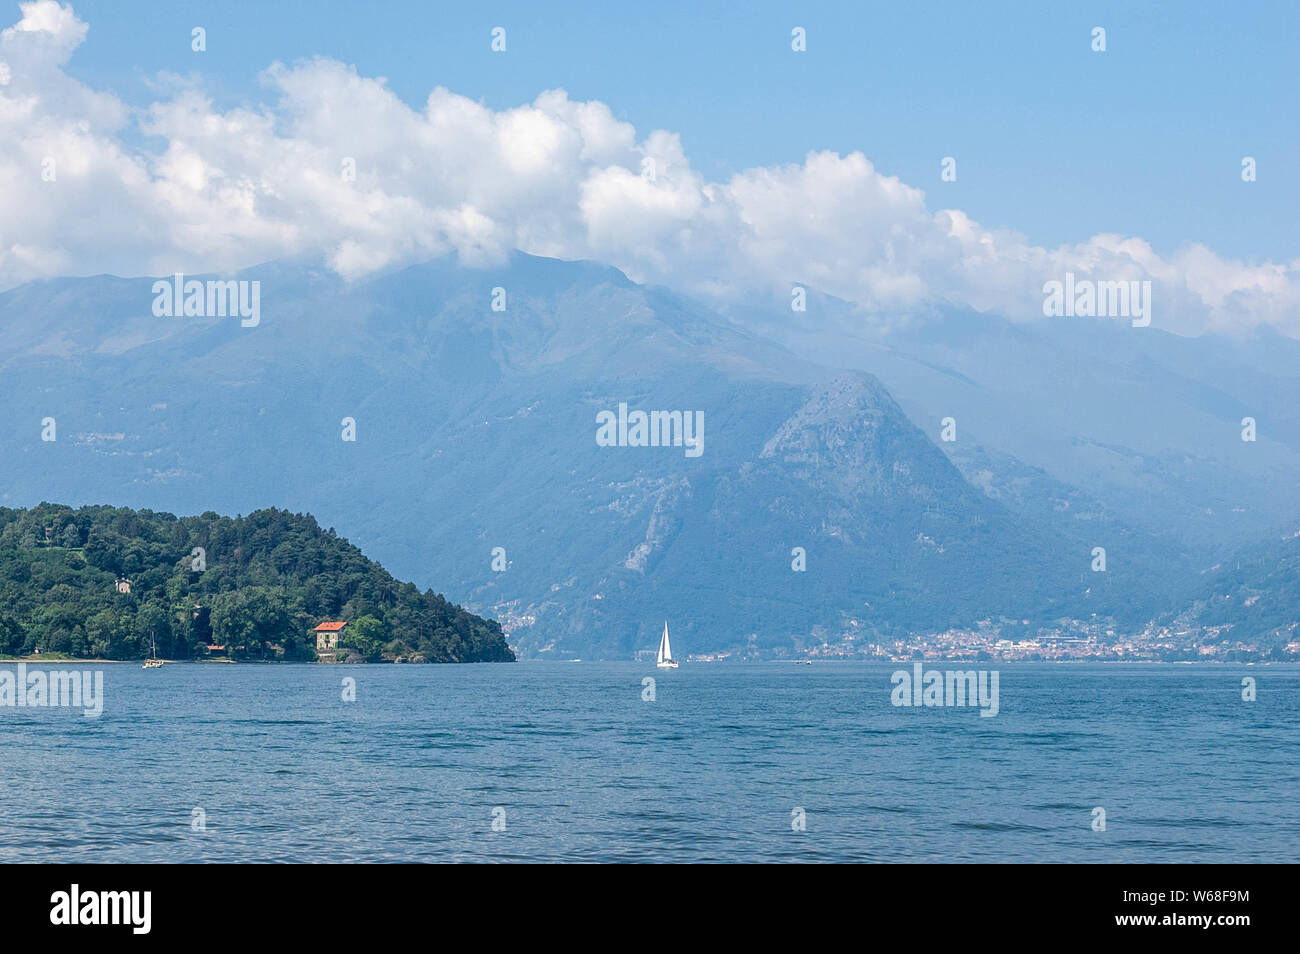 View of mountain lake and the pomontory on a sunny summer day. District of Como Lake, Colico, Italy, Europe. Stock Photo